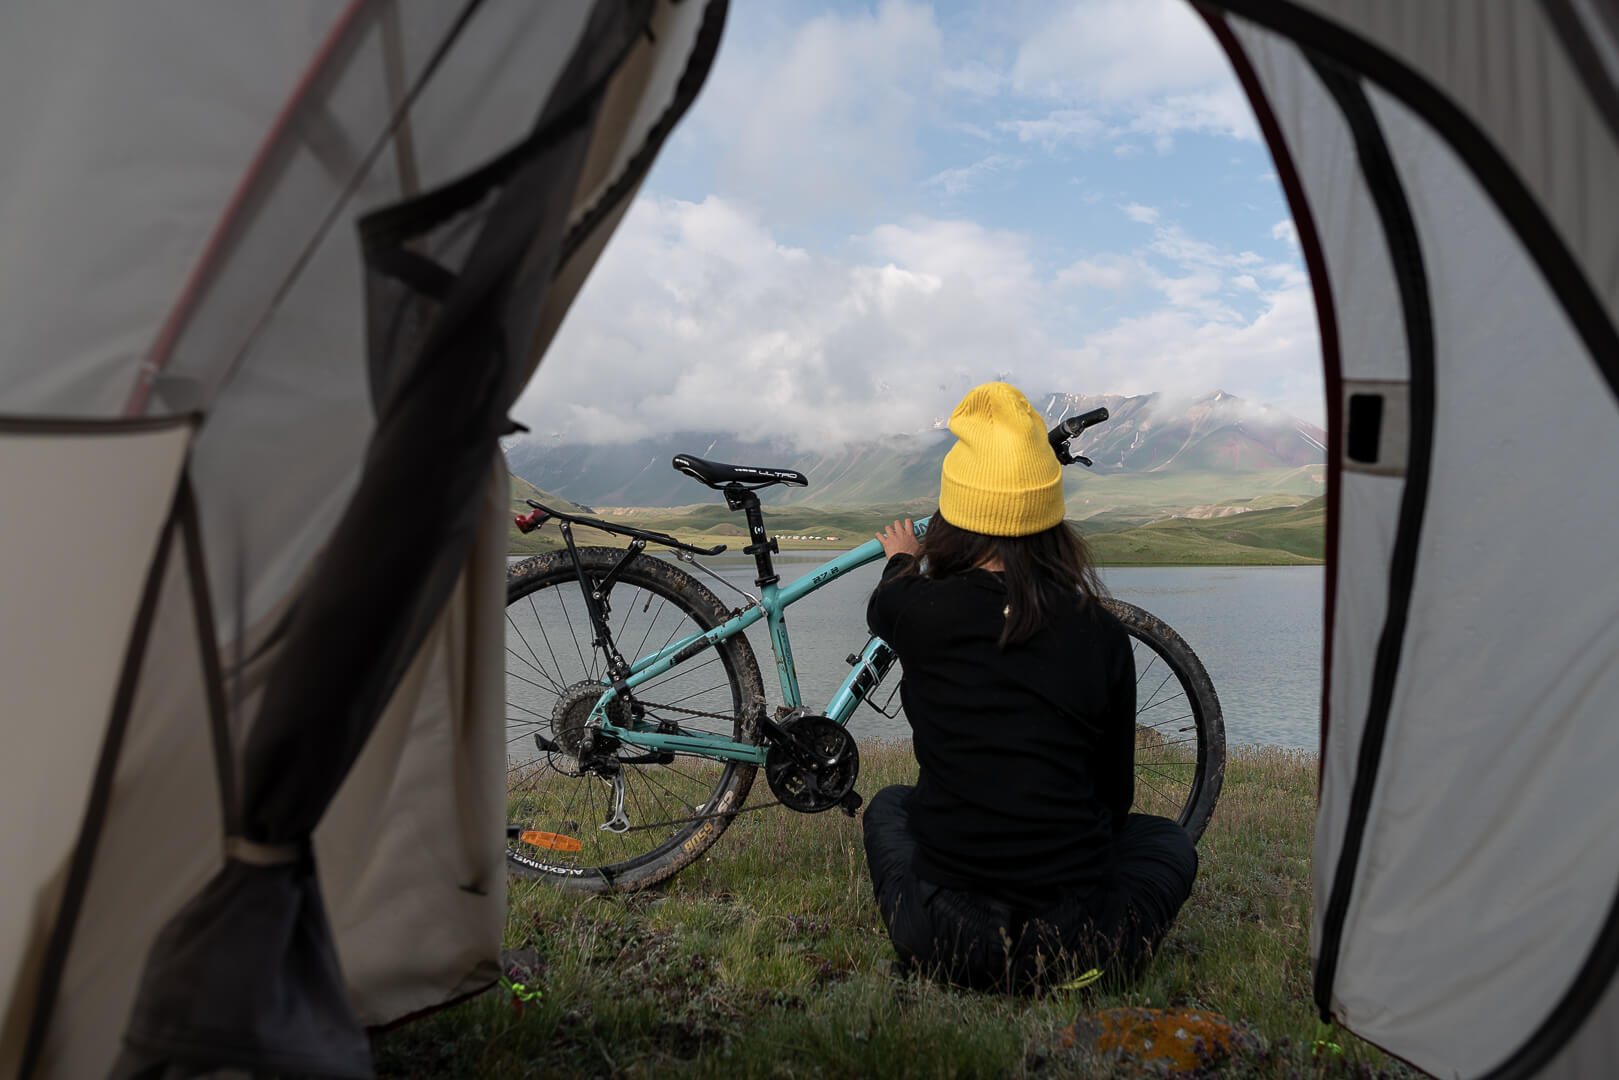 Marsha Jean and her bike in front of a beautiful lake in Central Asia.